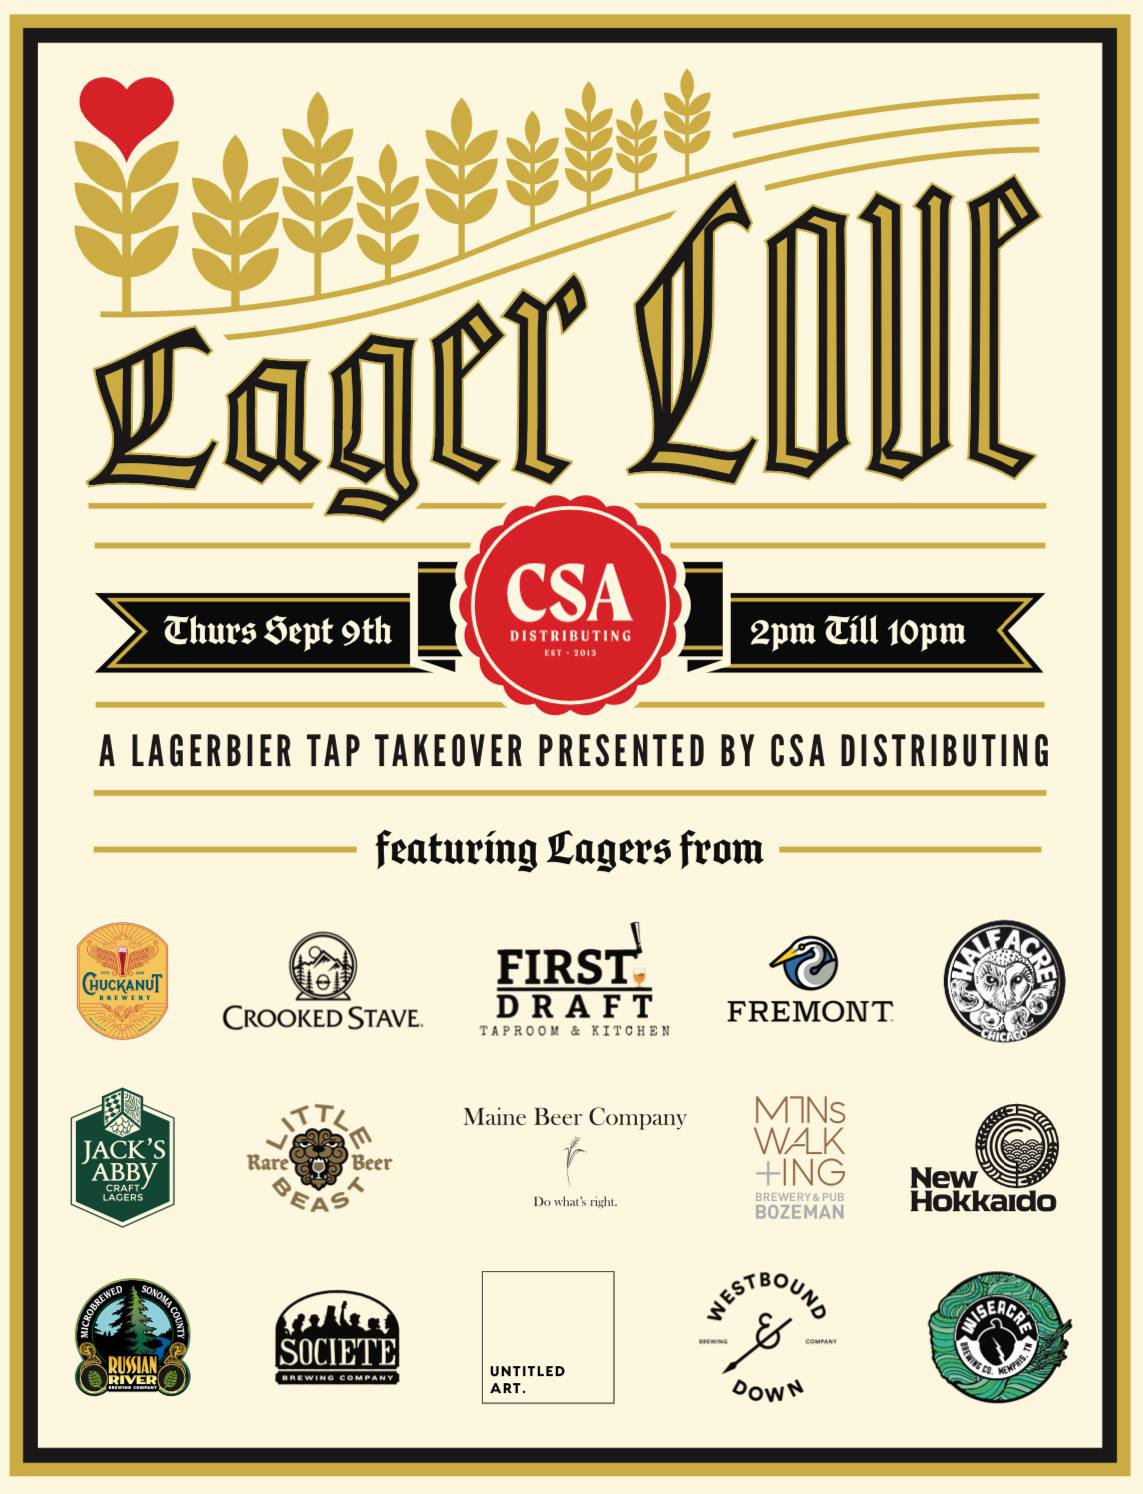 Lager Love at First Draft - CBC 2021